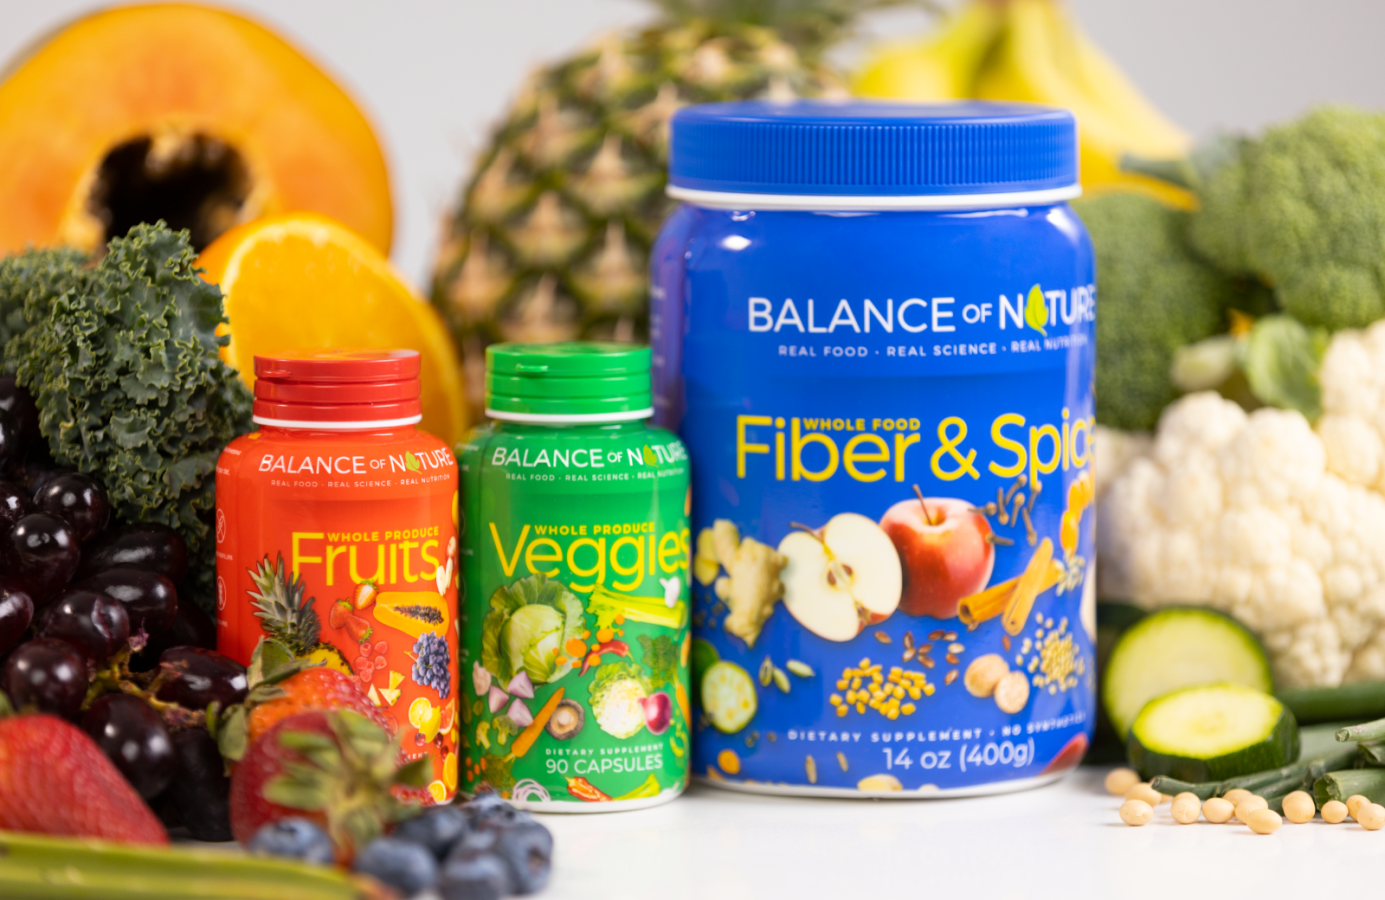 Balance of Nature: Our Products